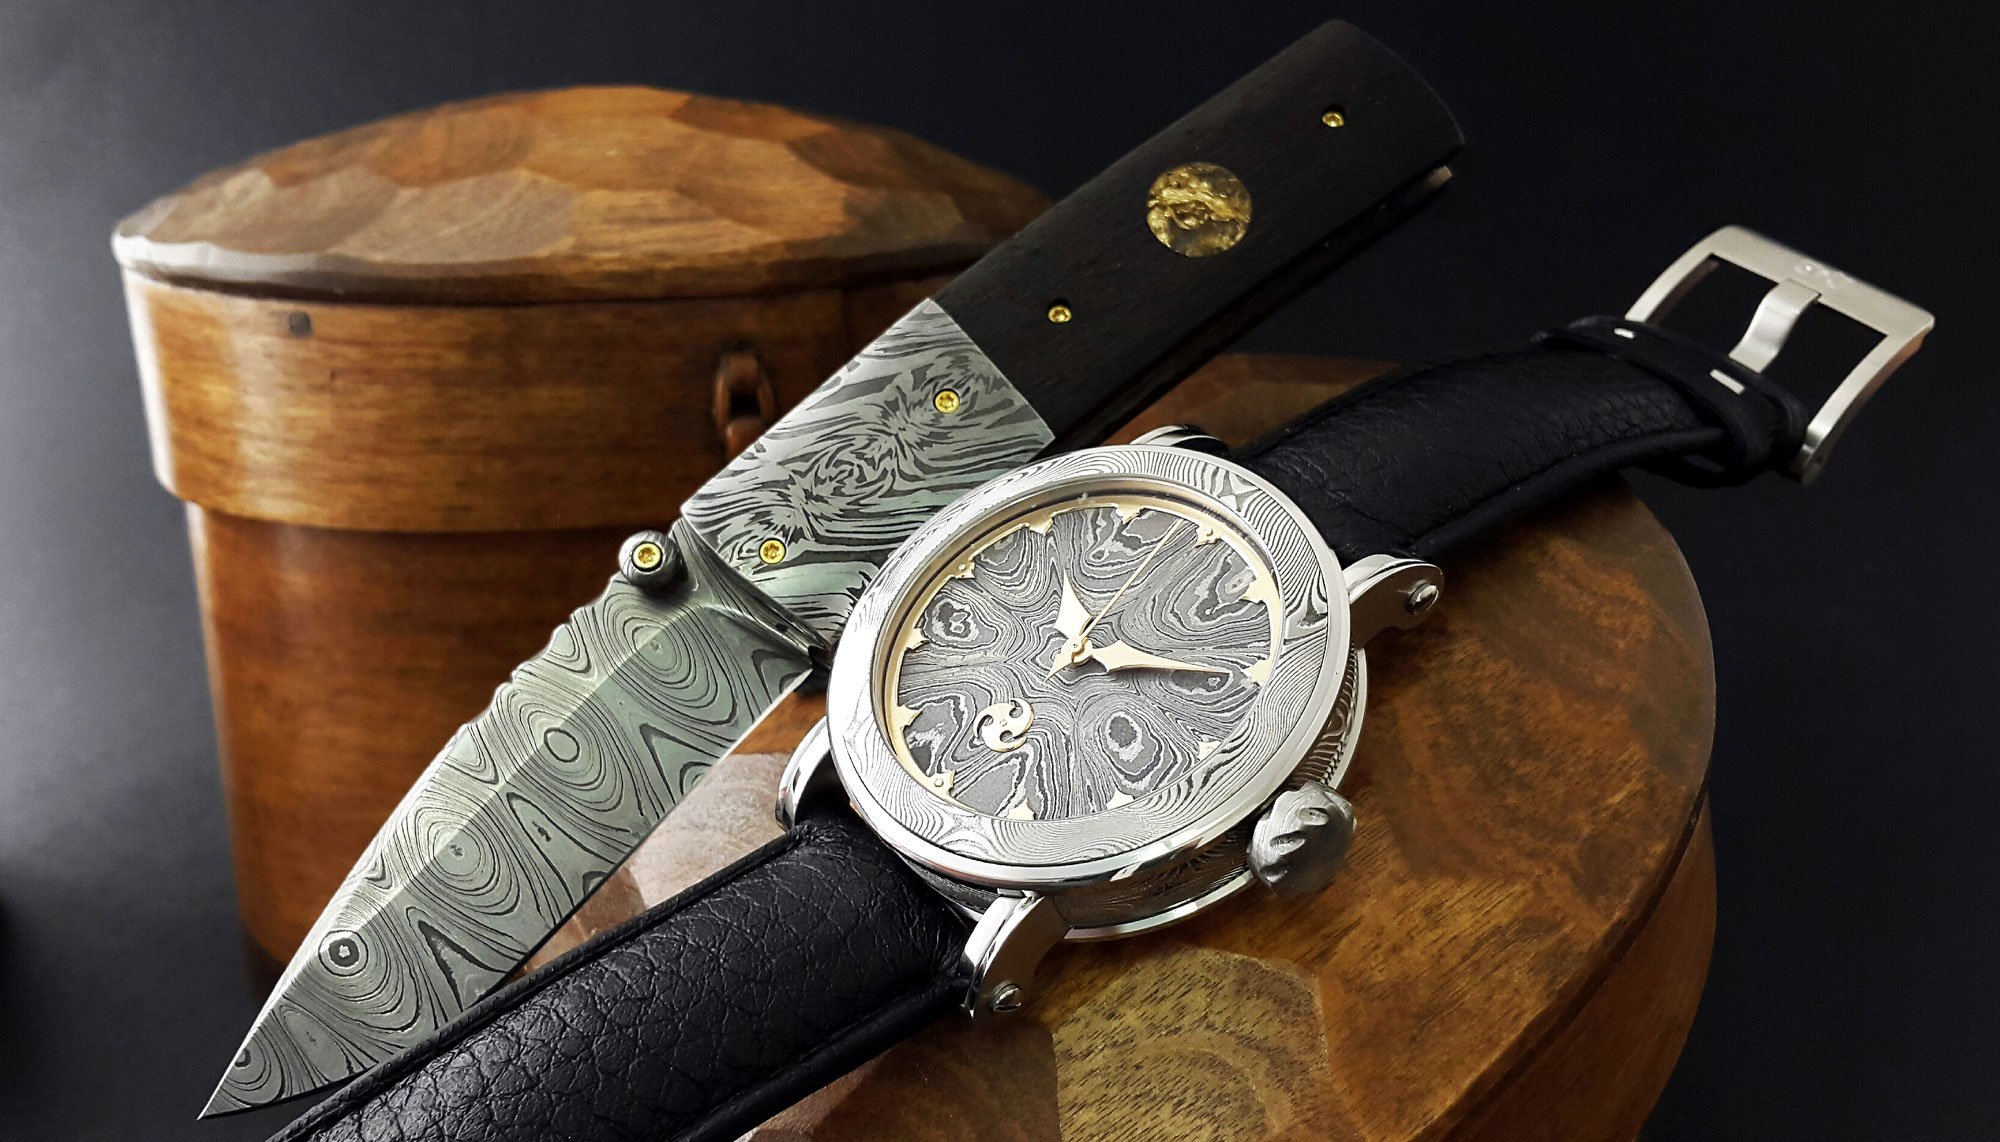 For those who want even more, Gustafsson and Sjögren are also working on a full gentleman's set with a pen, folder knife and cufflinks that match the new GoS Winter Nights watch